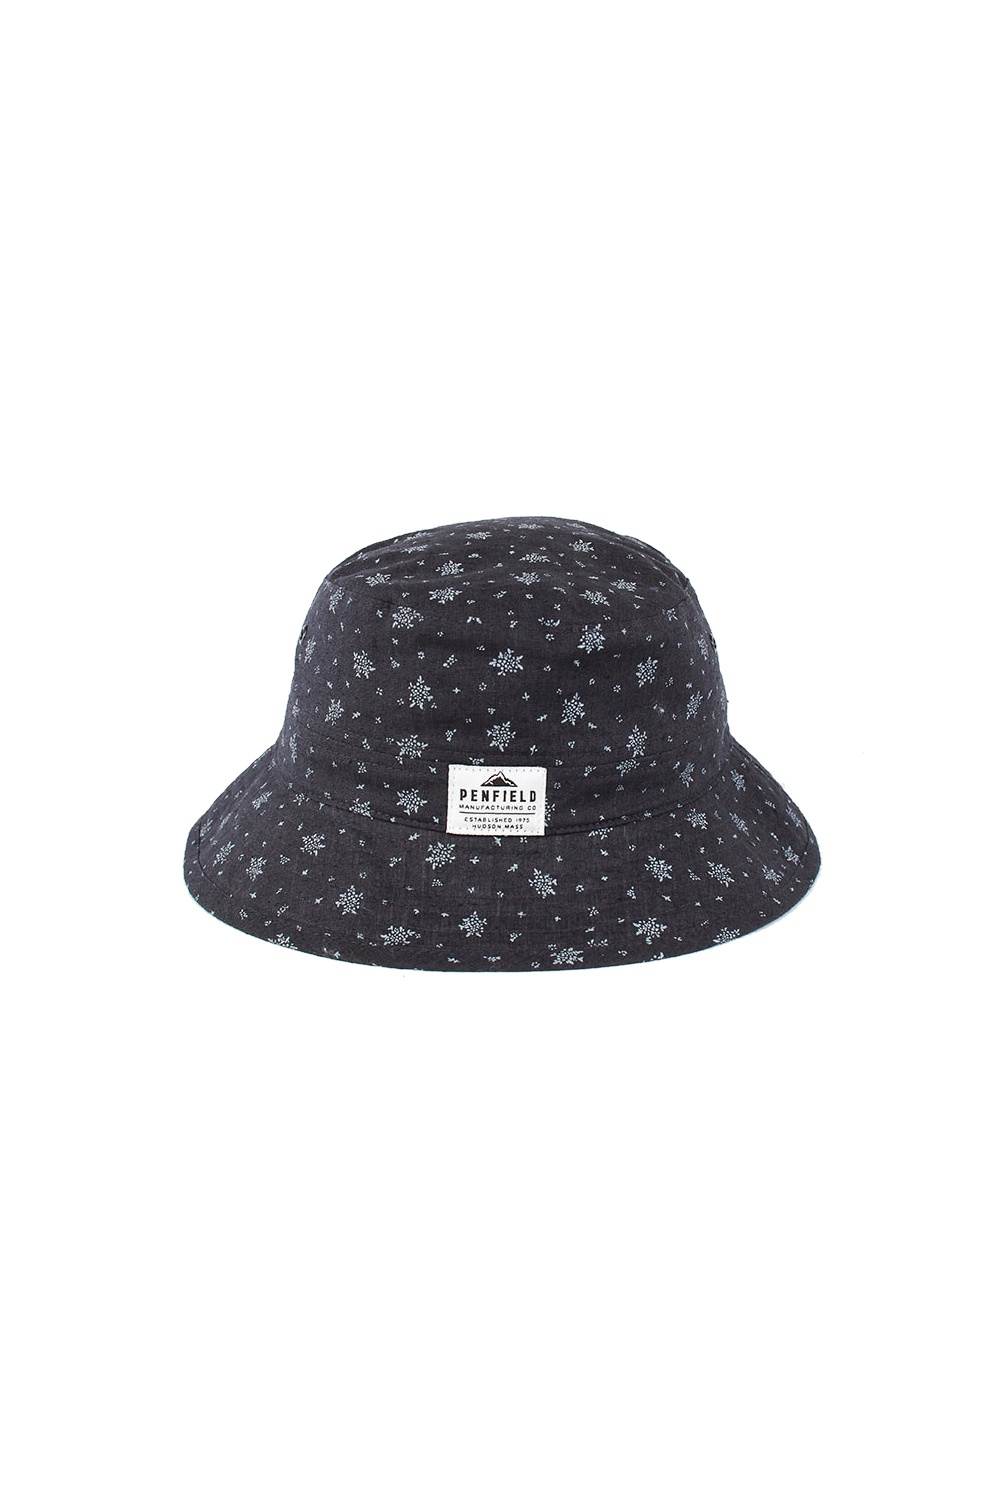 Penfield Baker Bucket Sun Hat (Navy Paisley) - Accessories from ... bd382e0e49a3